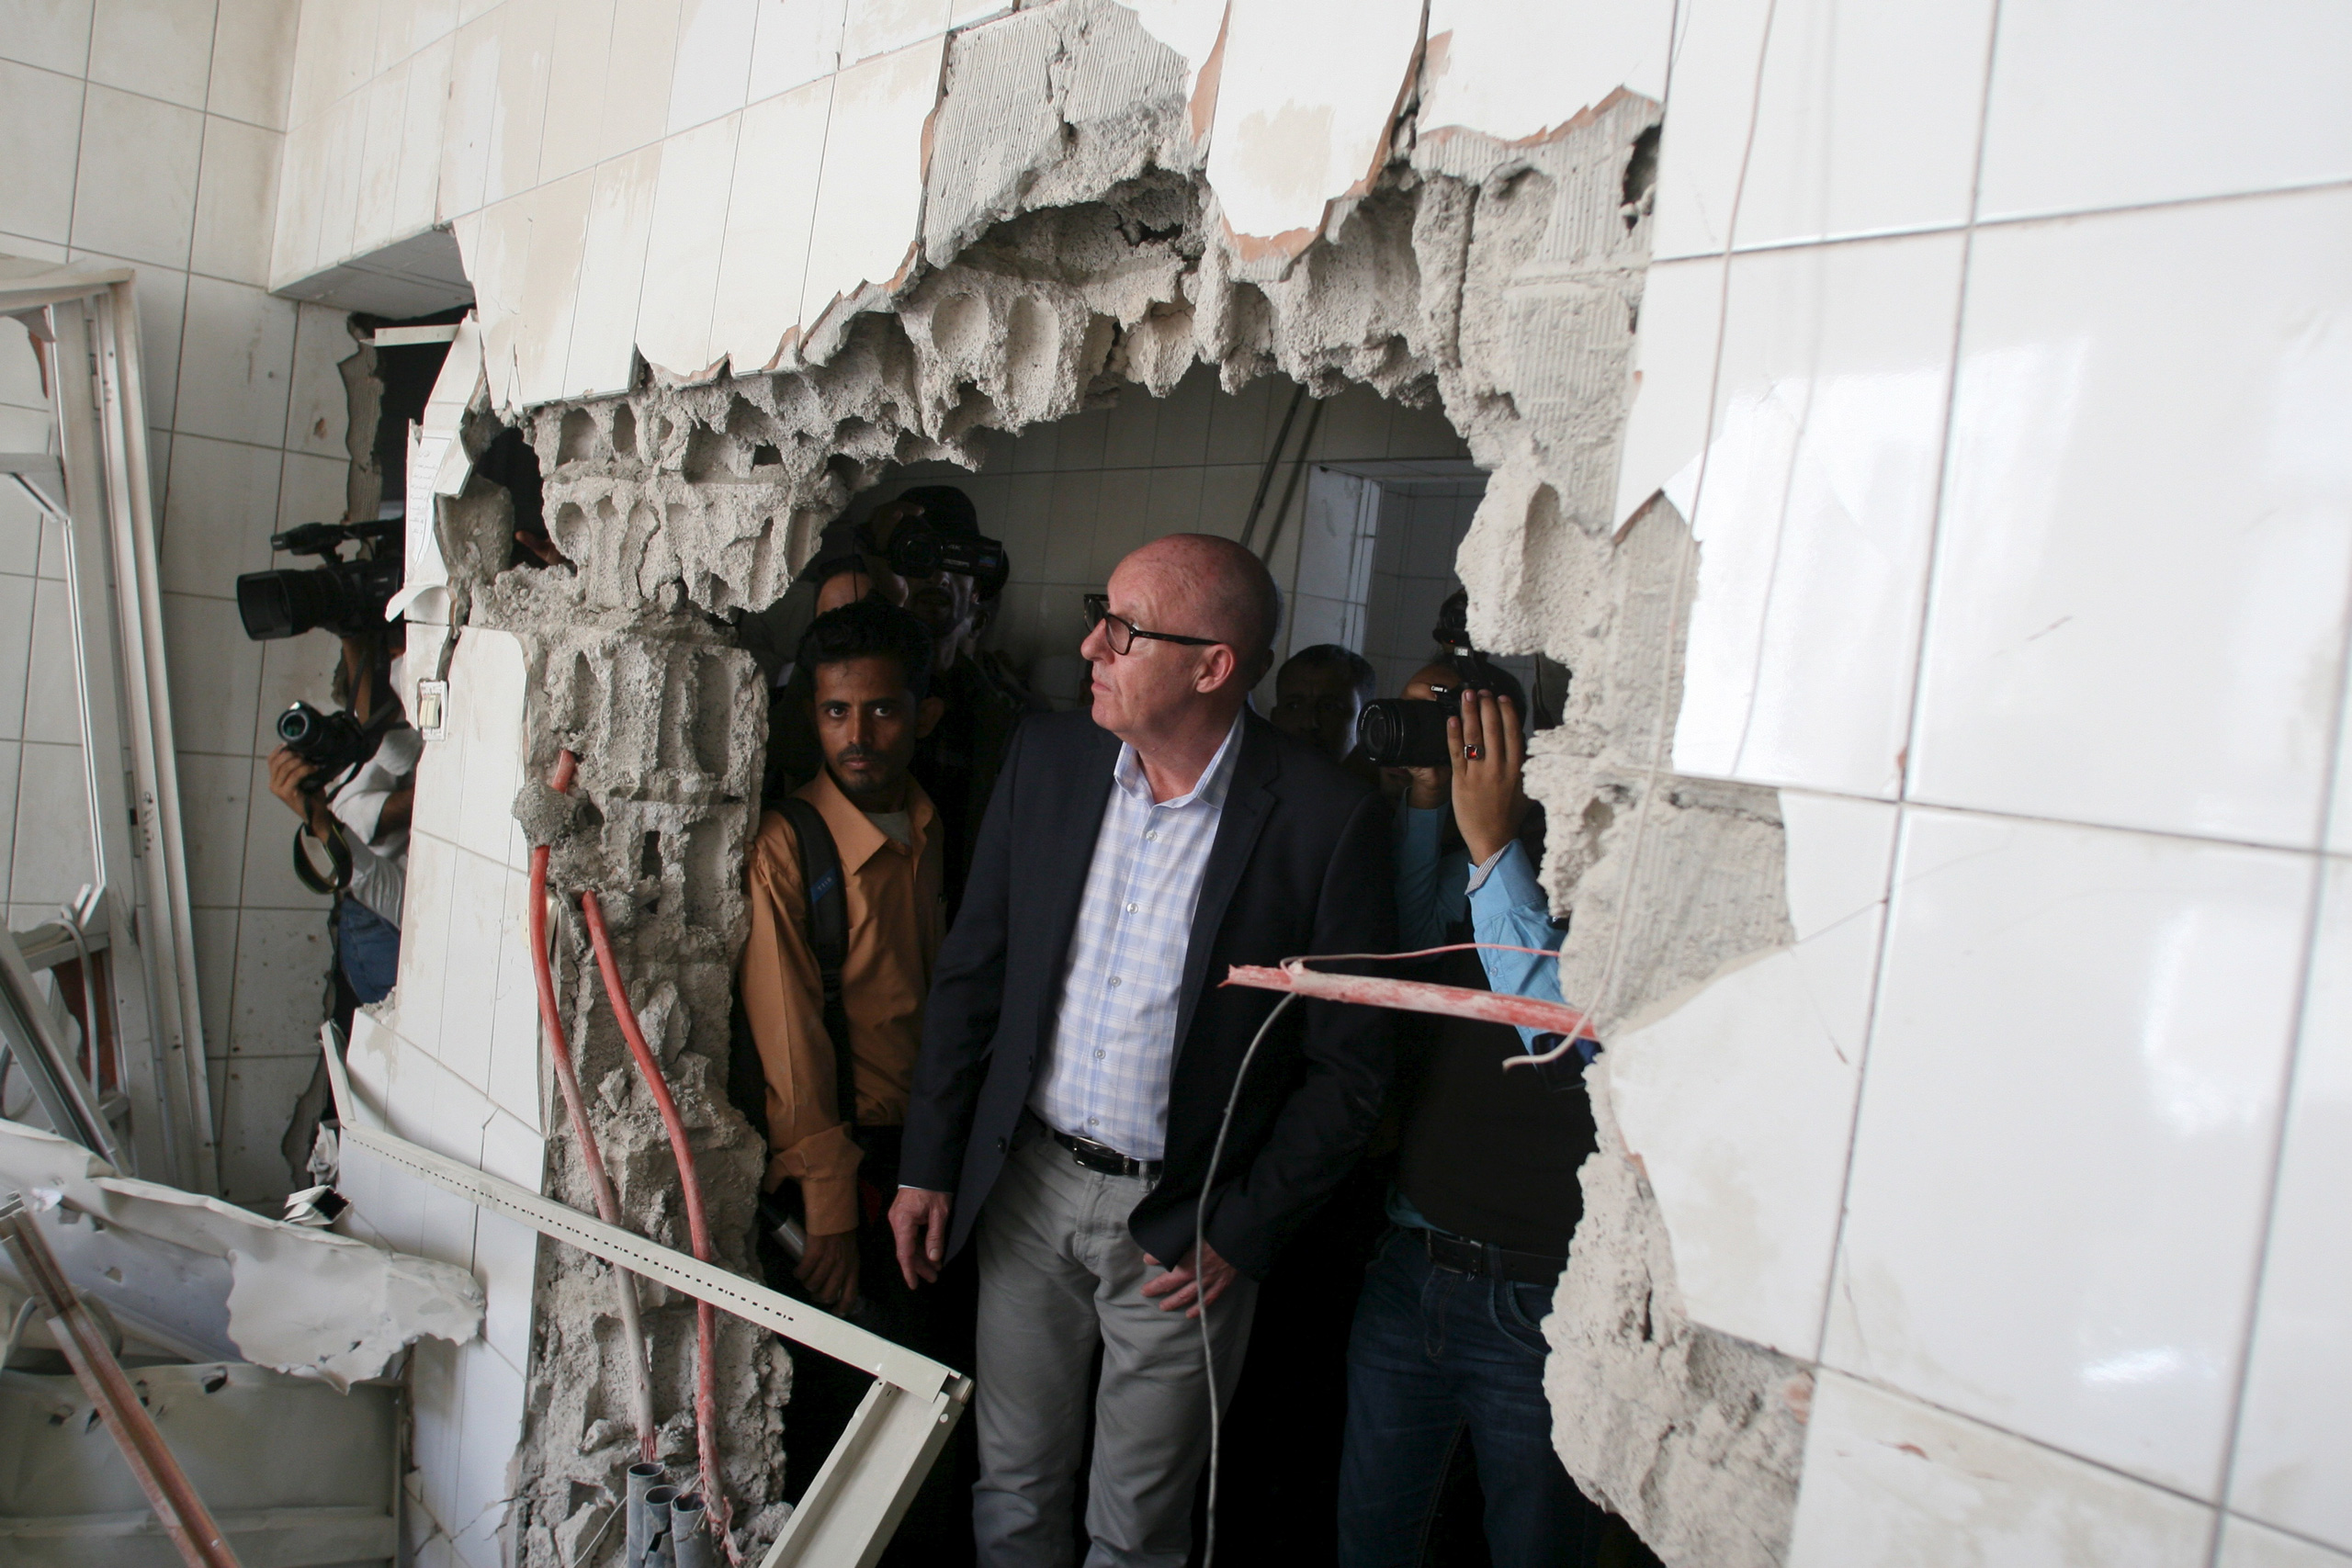 Resident Coordinator of the United Nations in Yemen, Jamie McGoldrick, inspects damage at a hospital in Yemen's southwestern city of Taiz on Jan. 21, 2016.